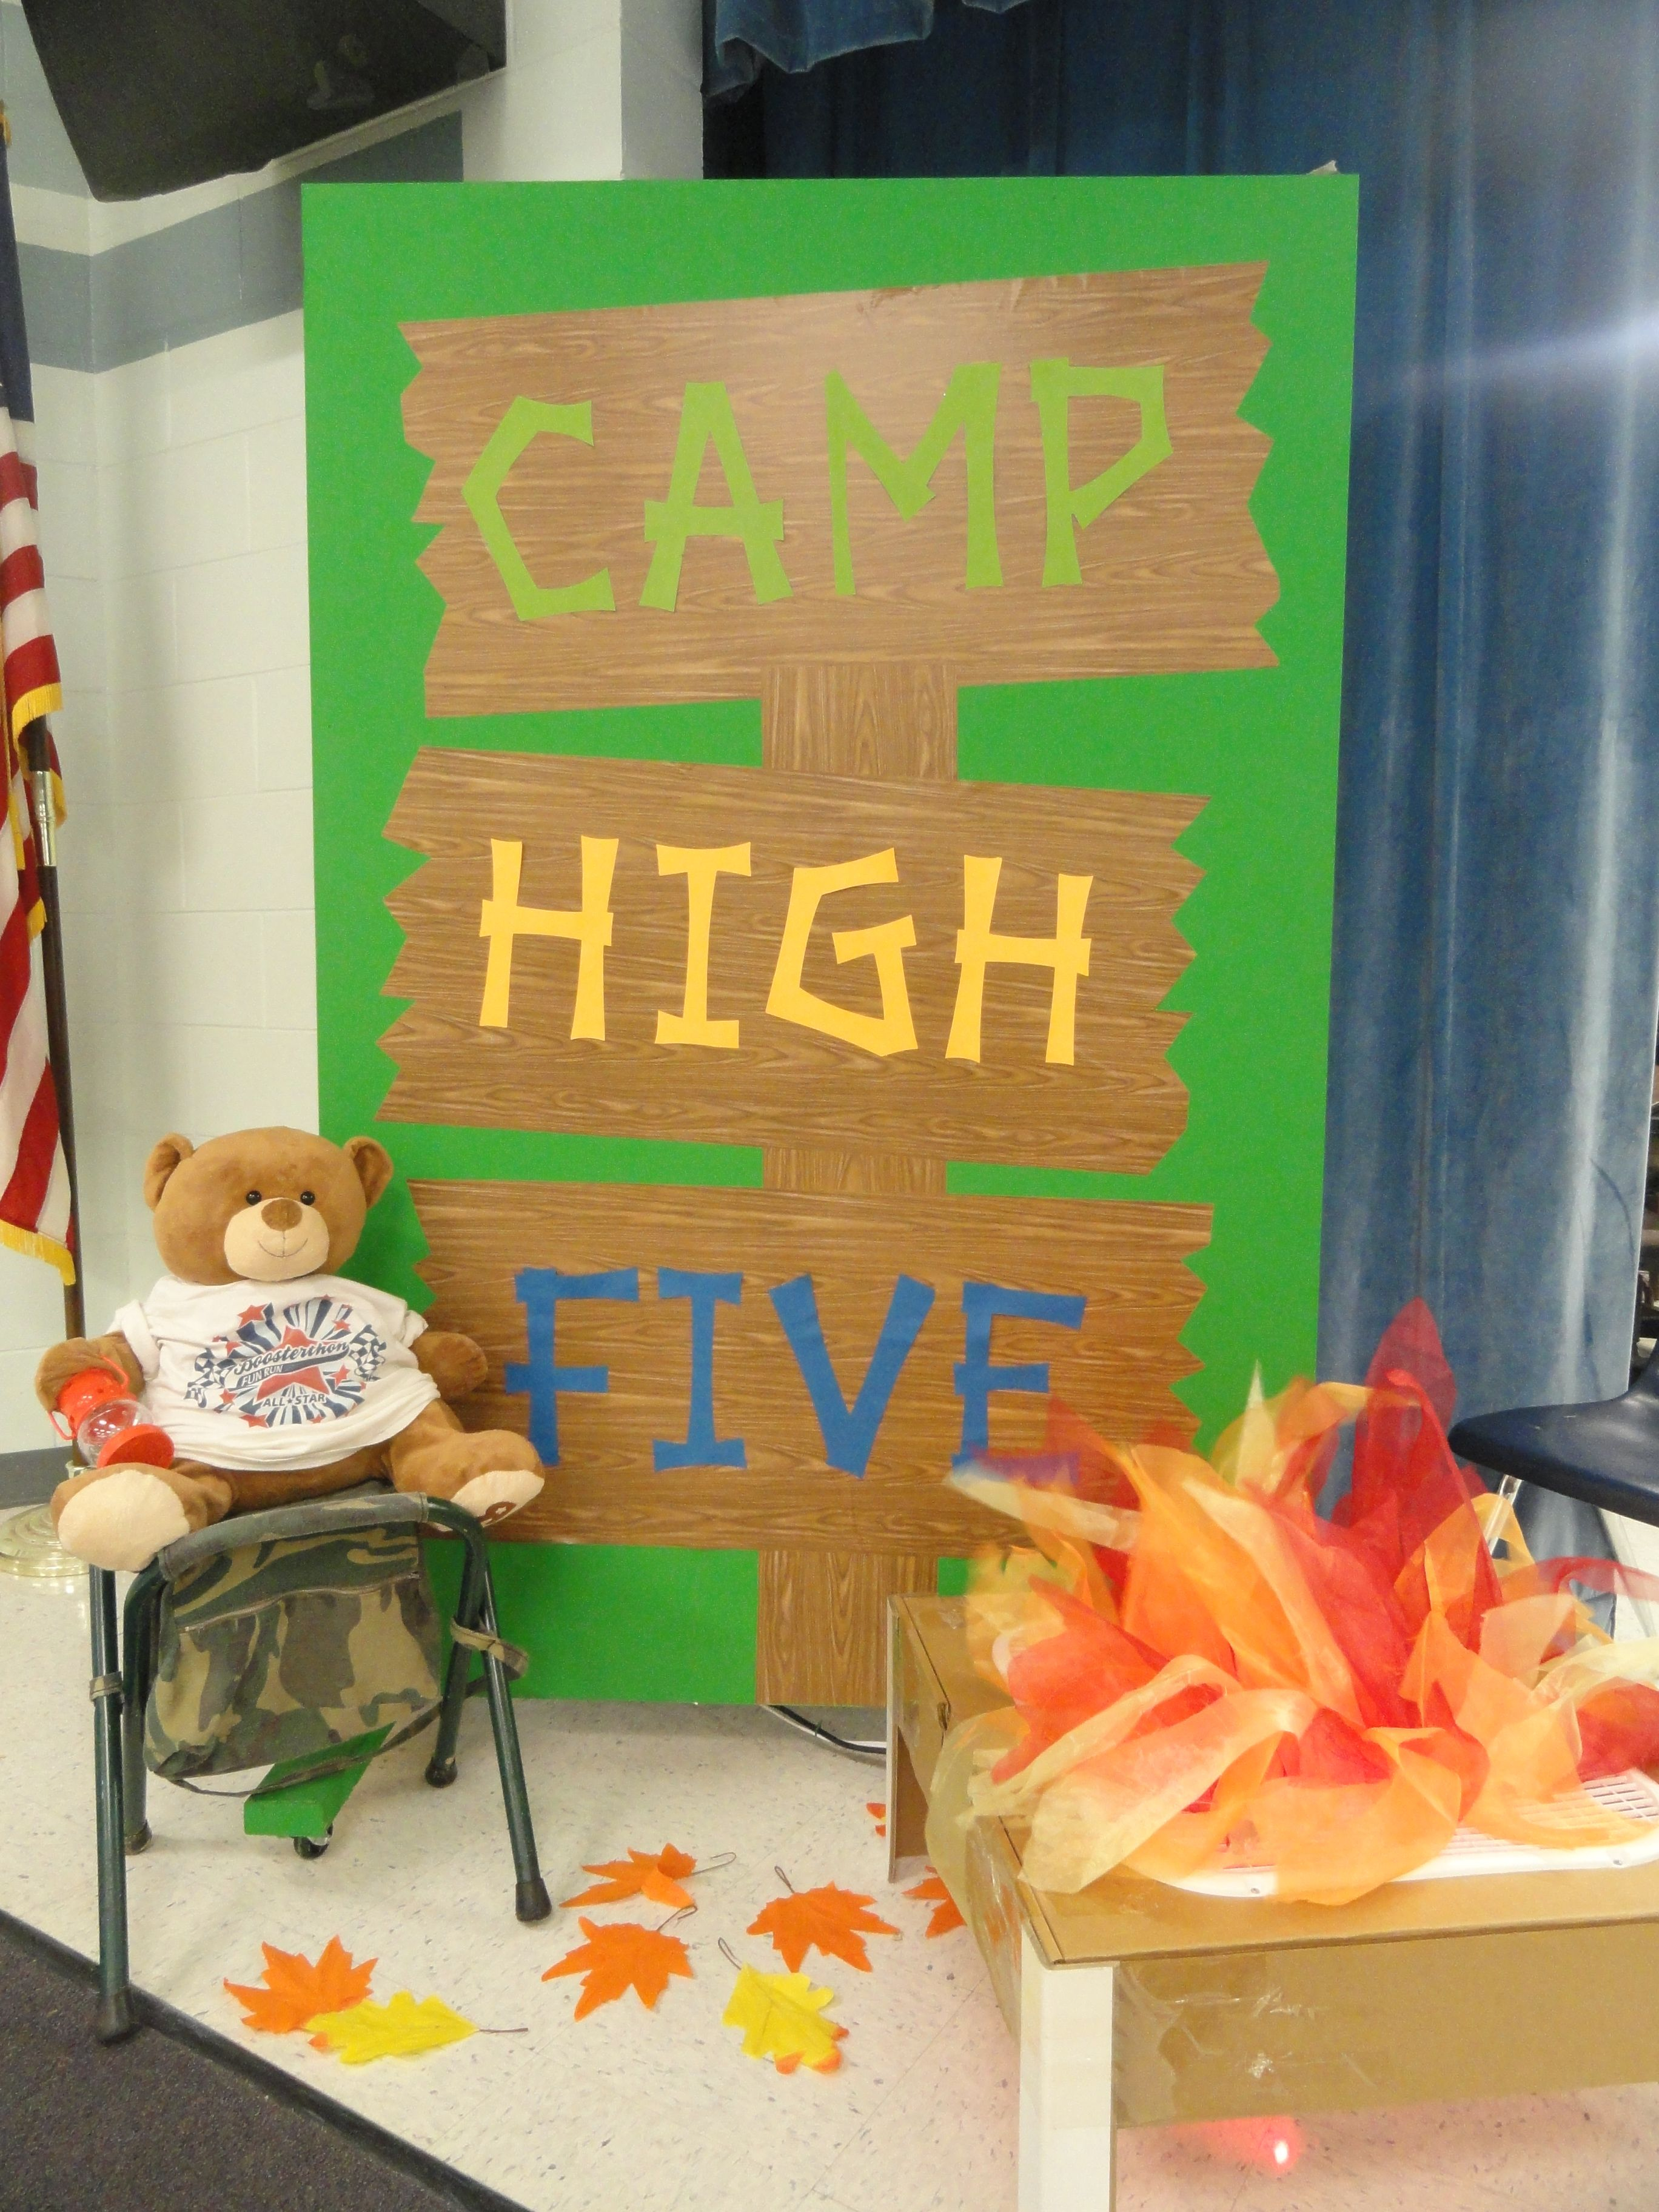 We are decorated and ready for Boosterthon!! Heathrow's Camp High Five is going to be so much fun!